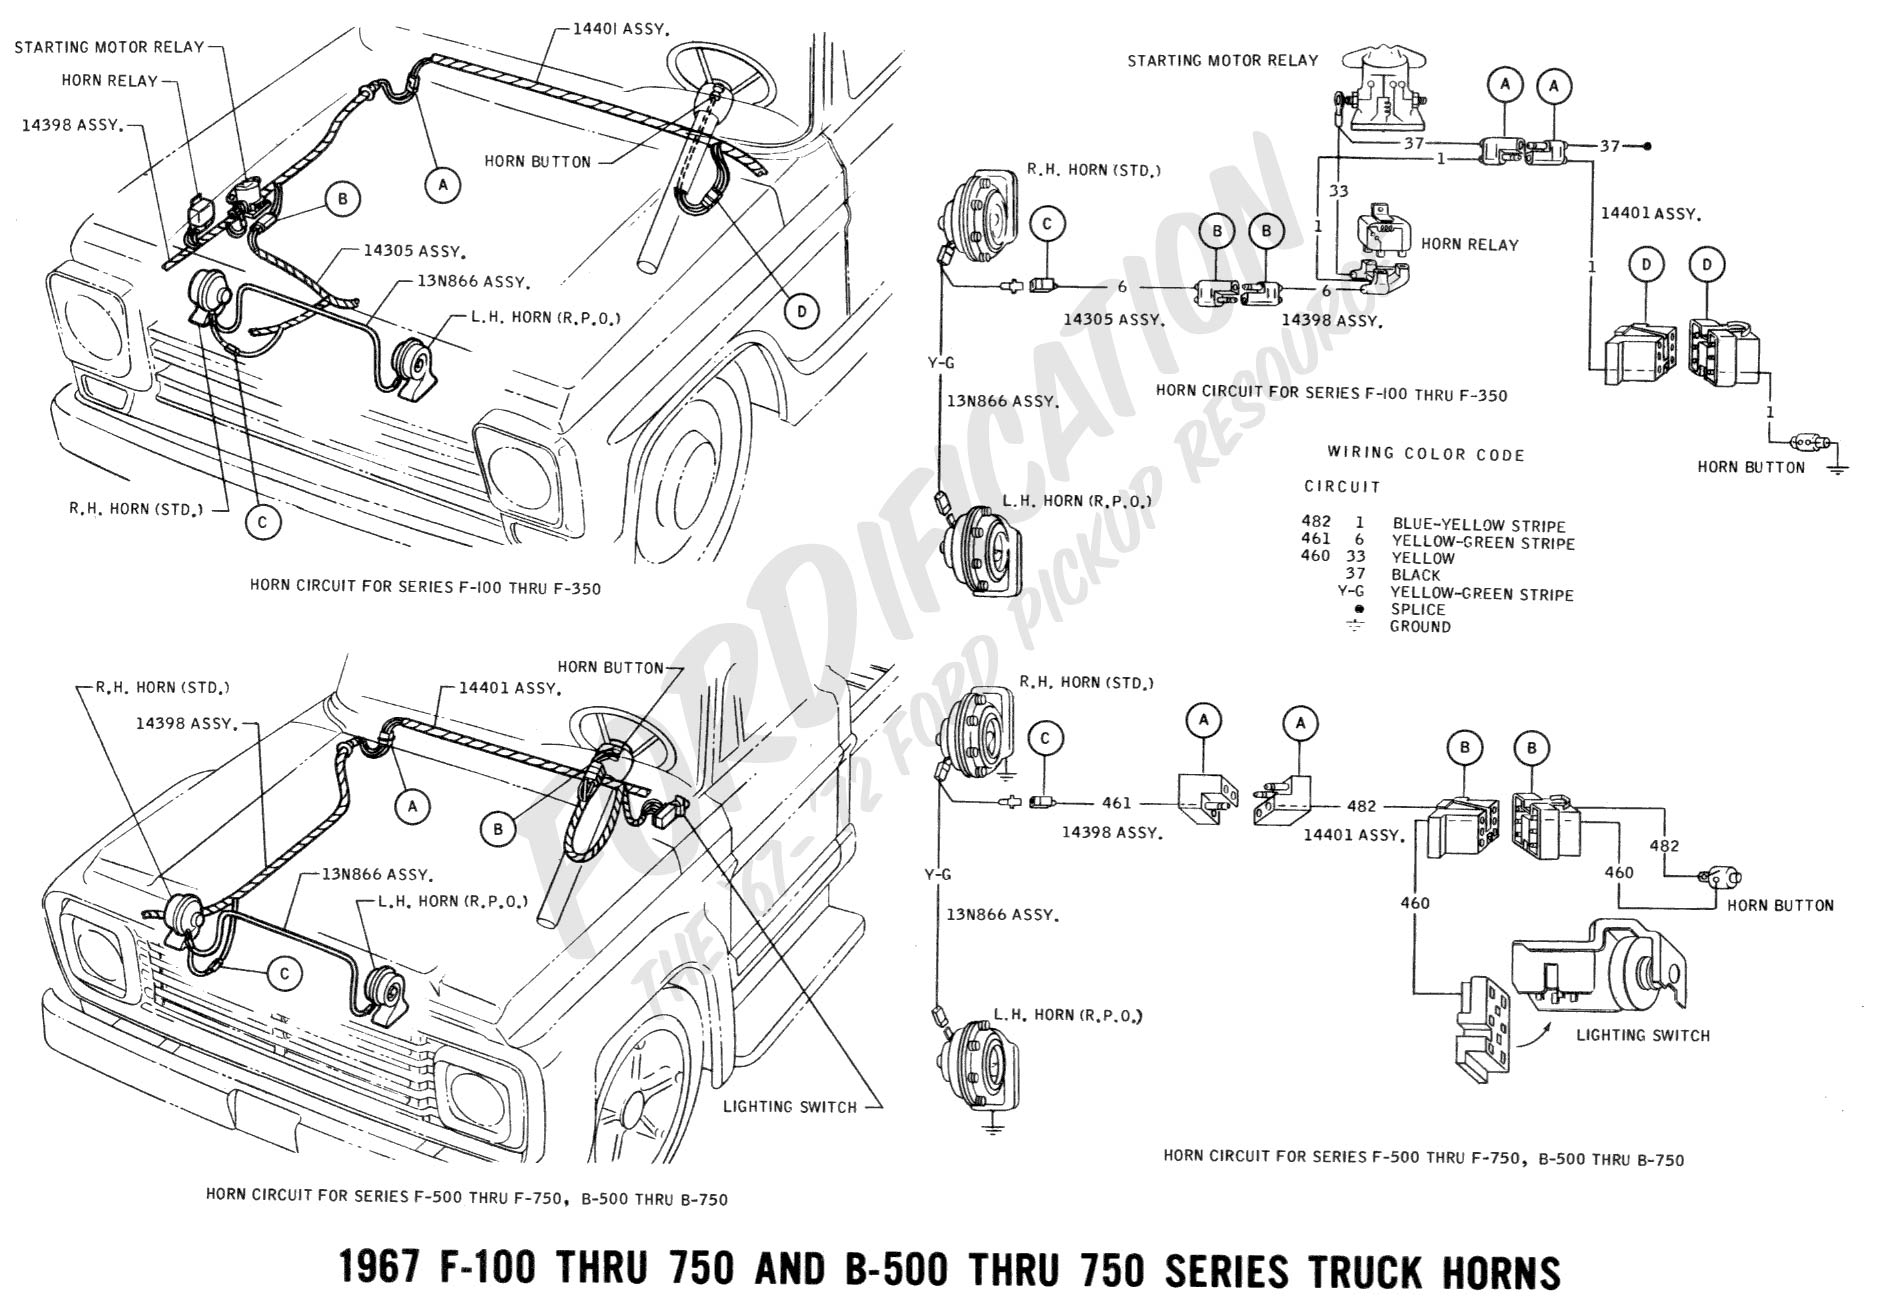 1973 ford f100 ignition wiring diagram daily update wiring diagram 1970 Ford F100 Wiring Harness